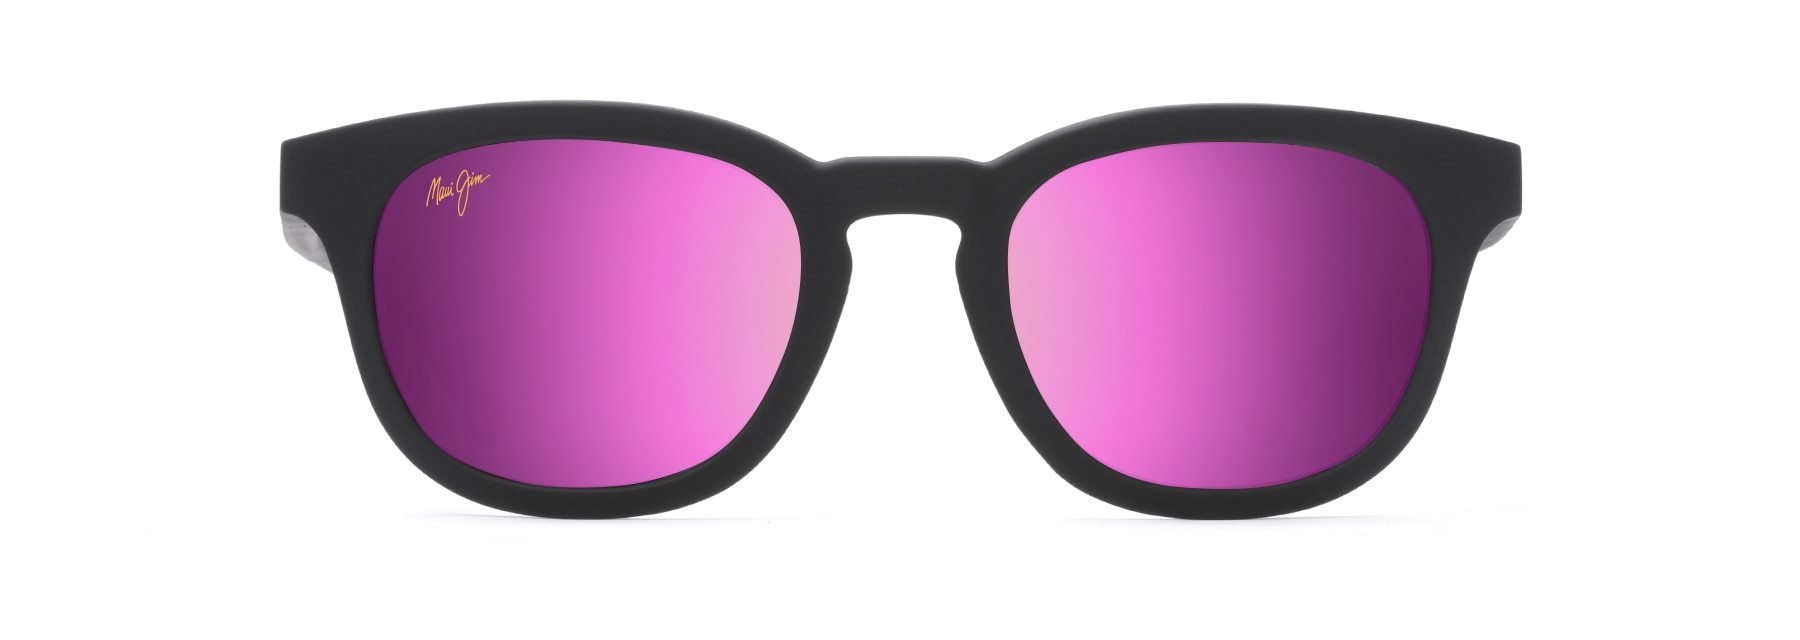 MyMaui Koko Head MM737-019 Sunglasses